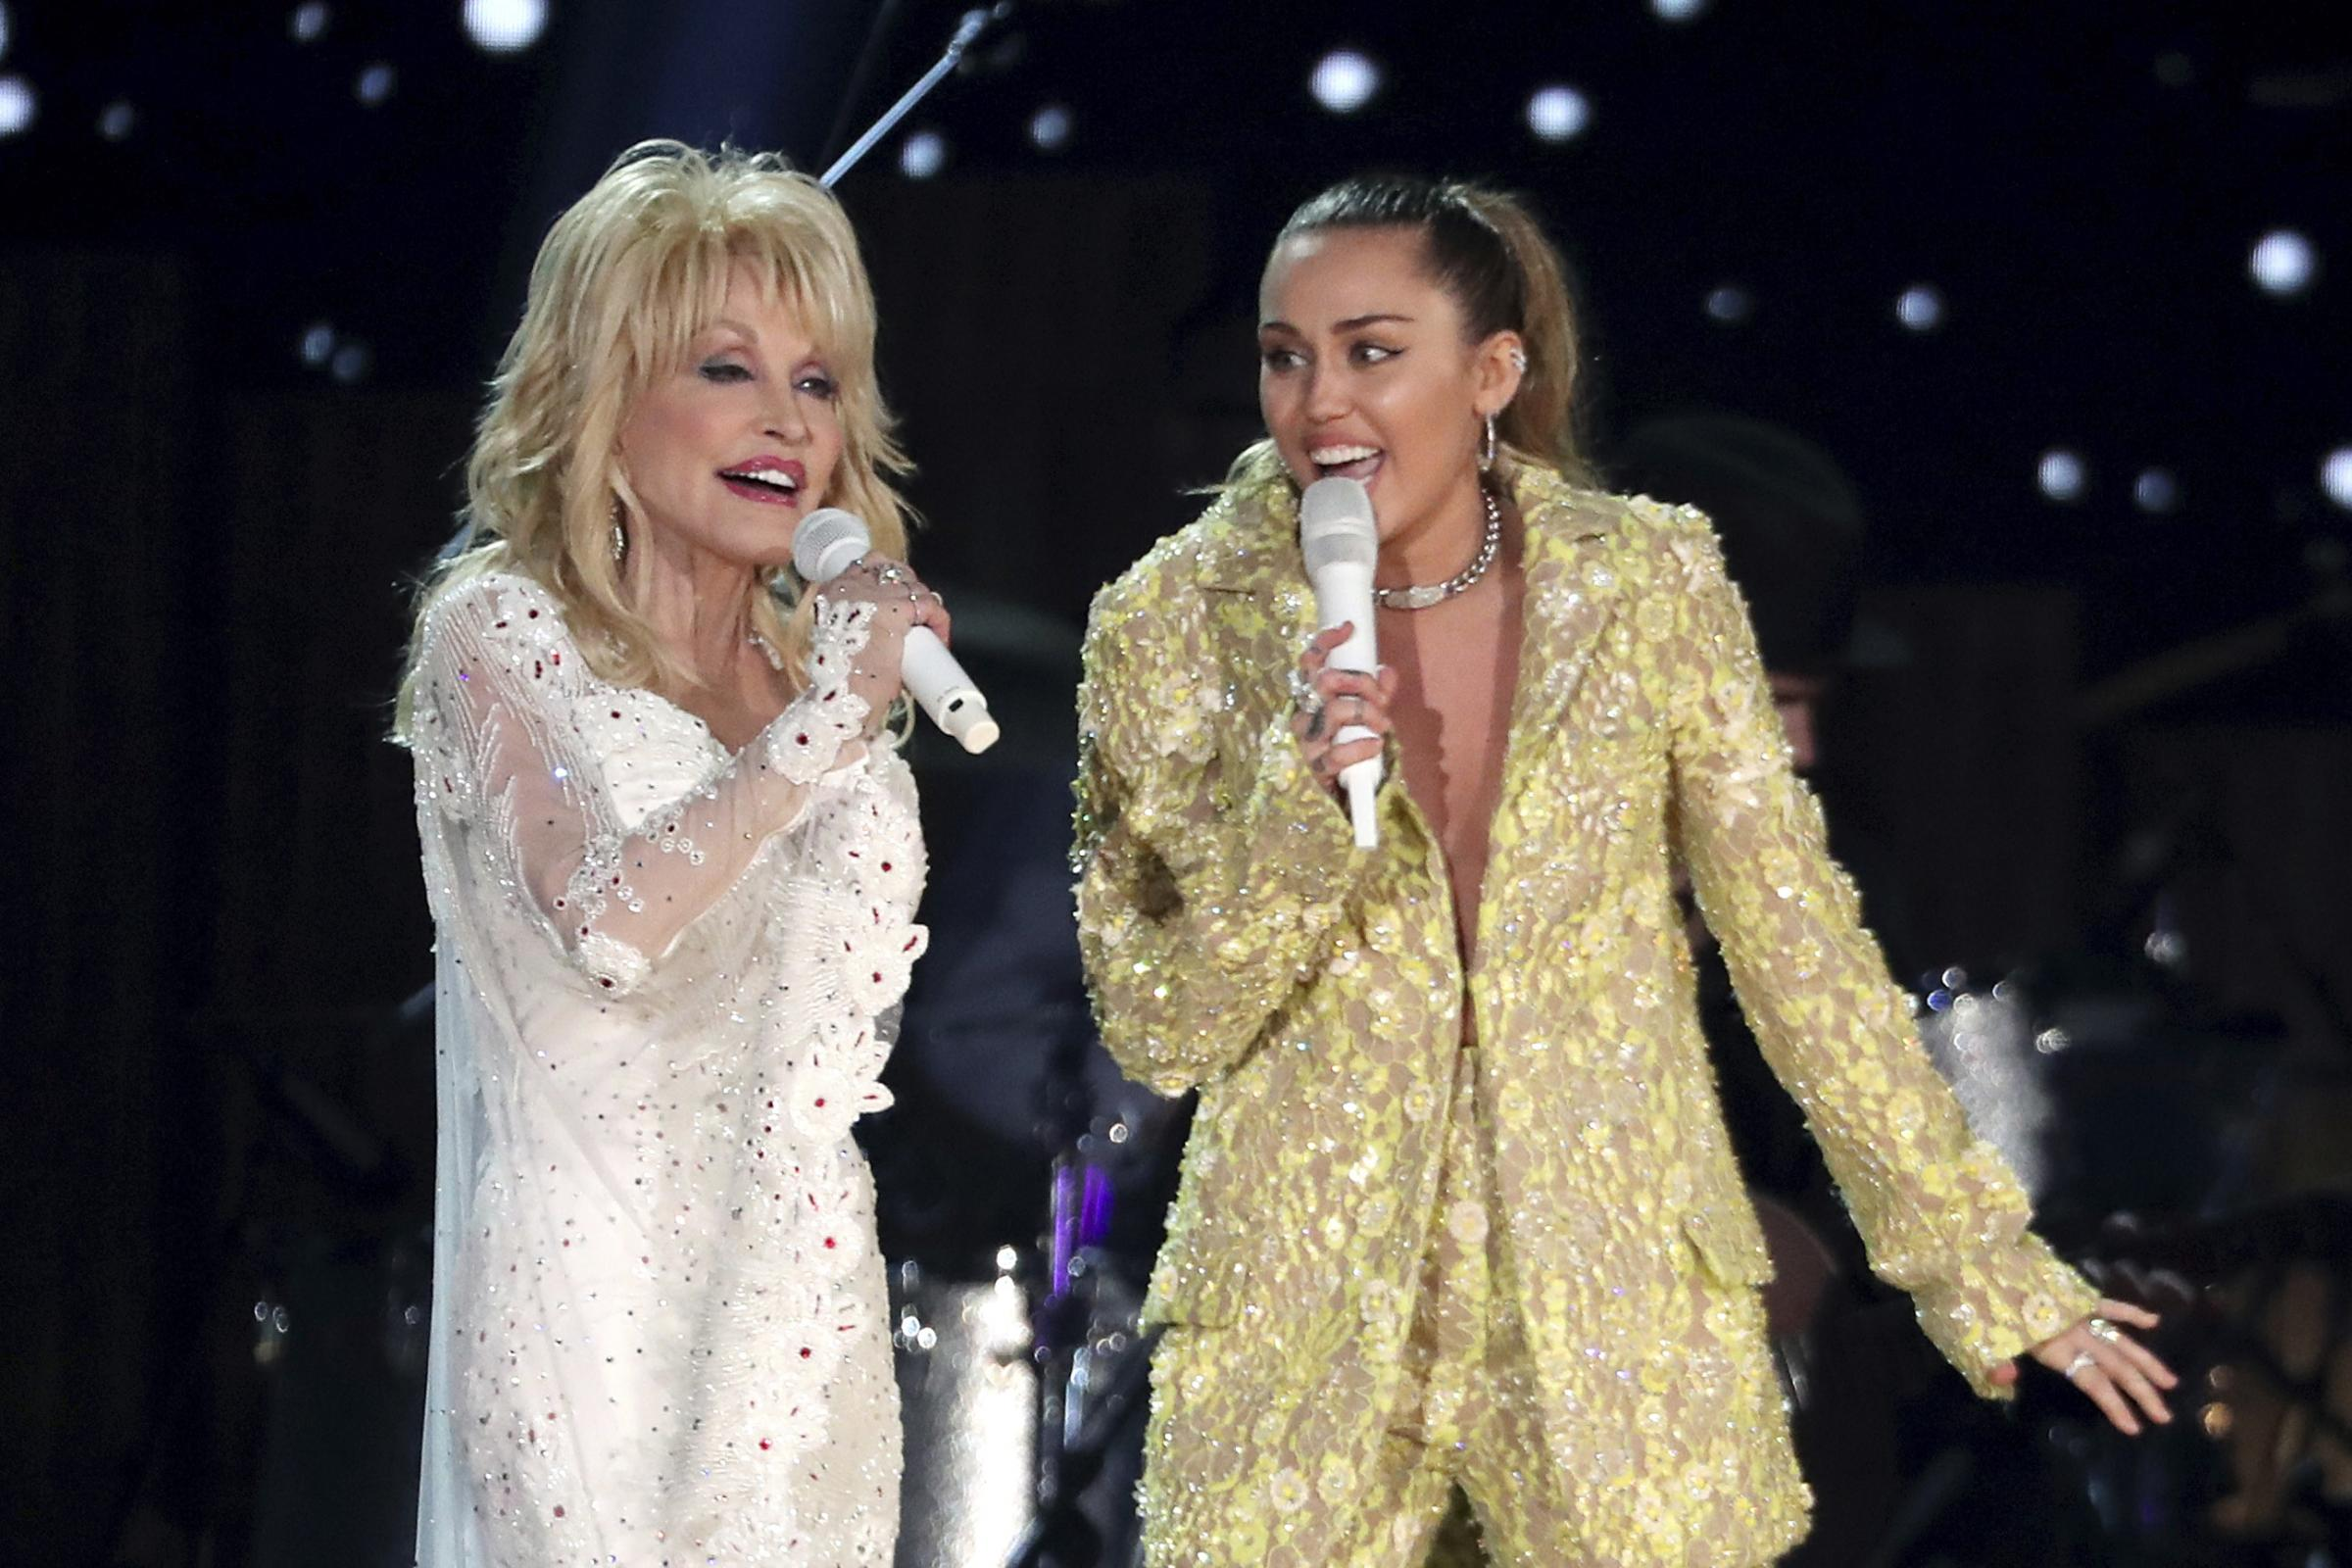 Dolly Parton and Miley Cyrus perform Jolene